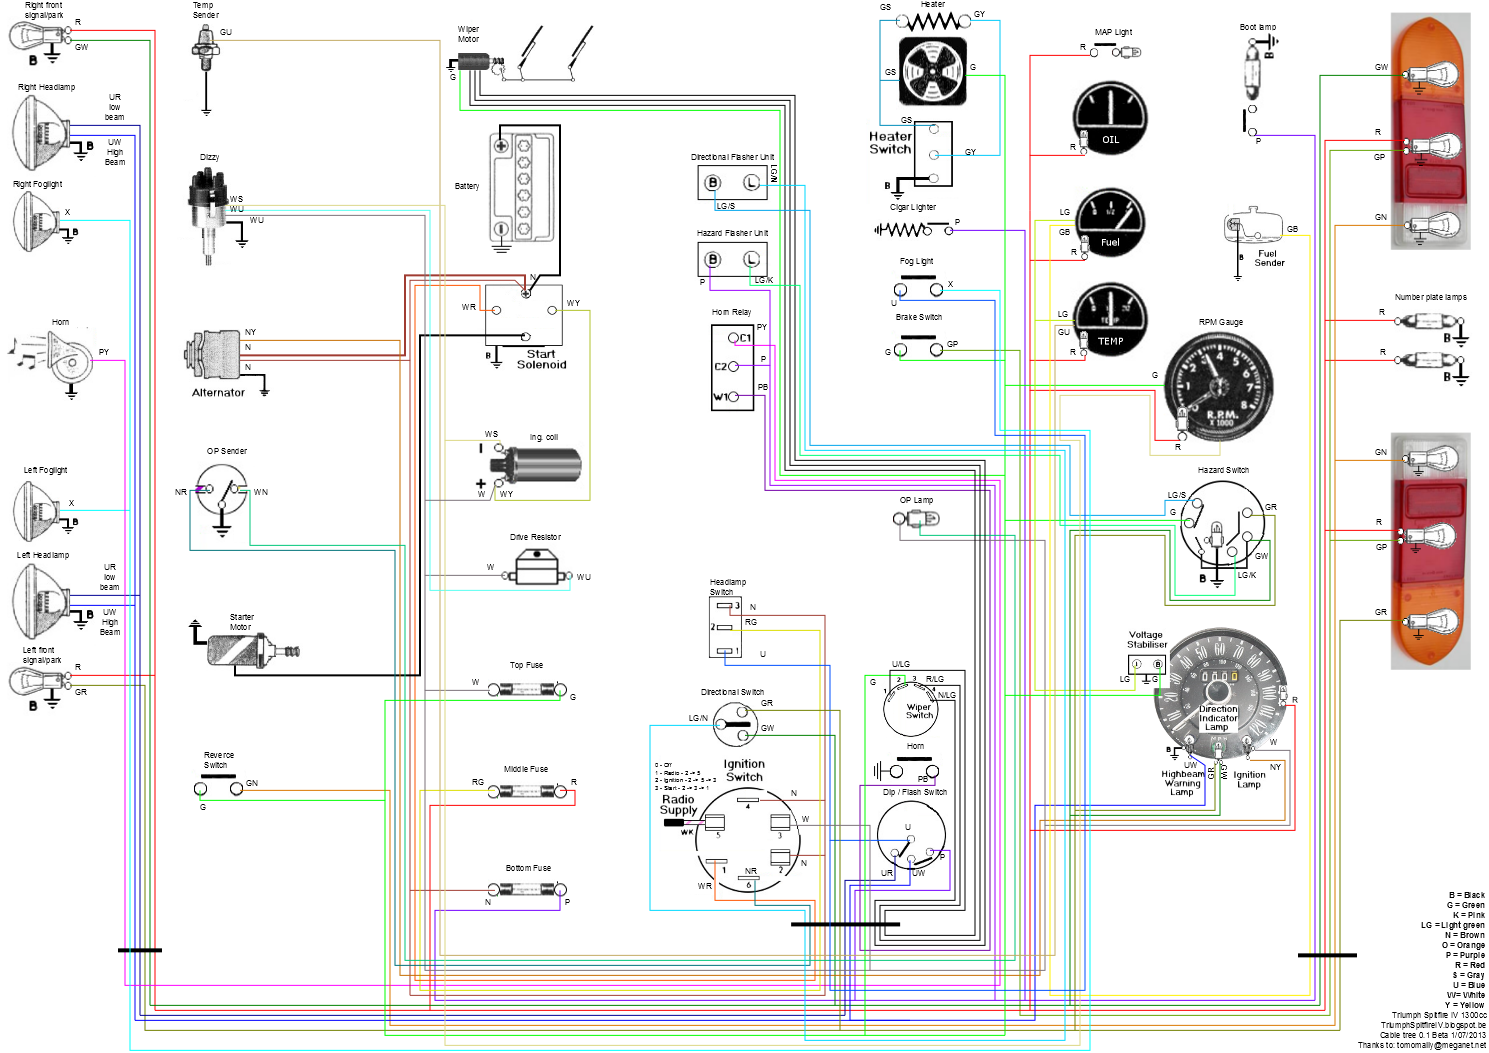 spitfire iv wiring diagram mk4 wiring diagram mk4 tdi wiring diagram \u2022 wiring diagrams j 2005 E55 AMG Performance Parts at creativeand.co